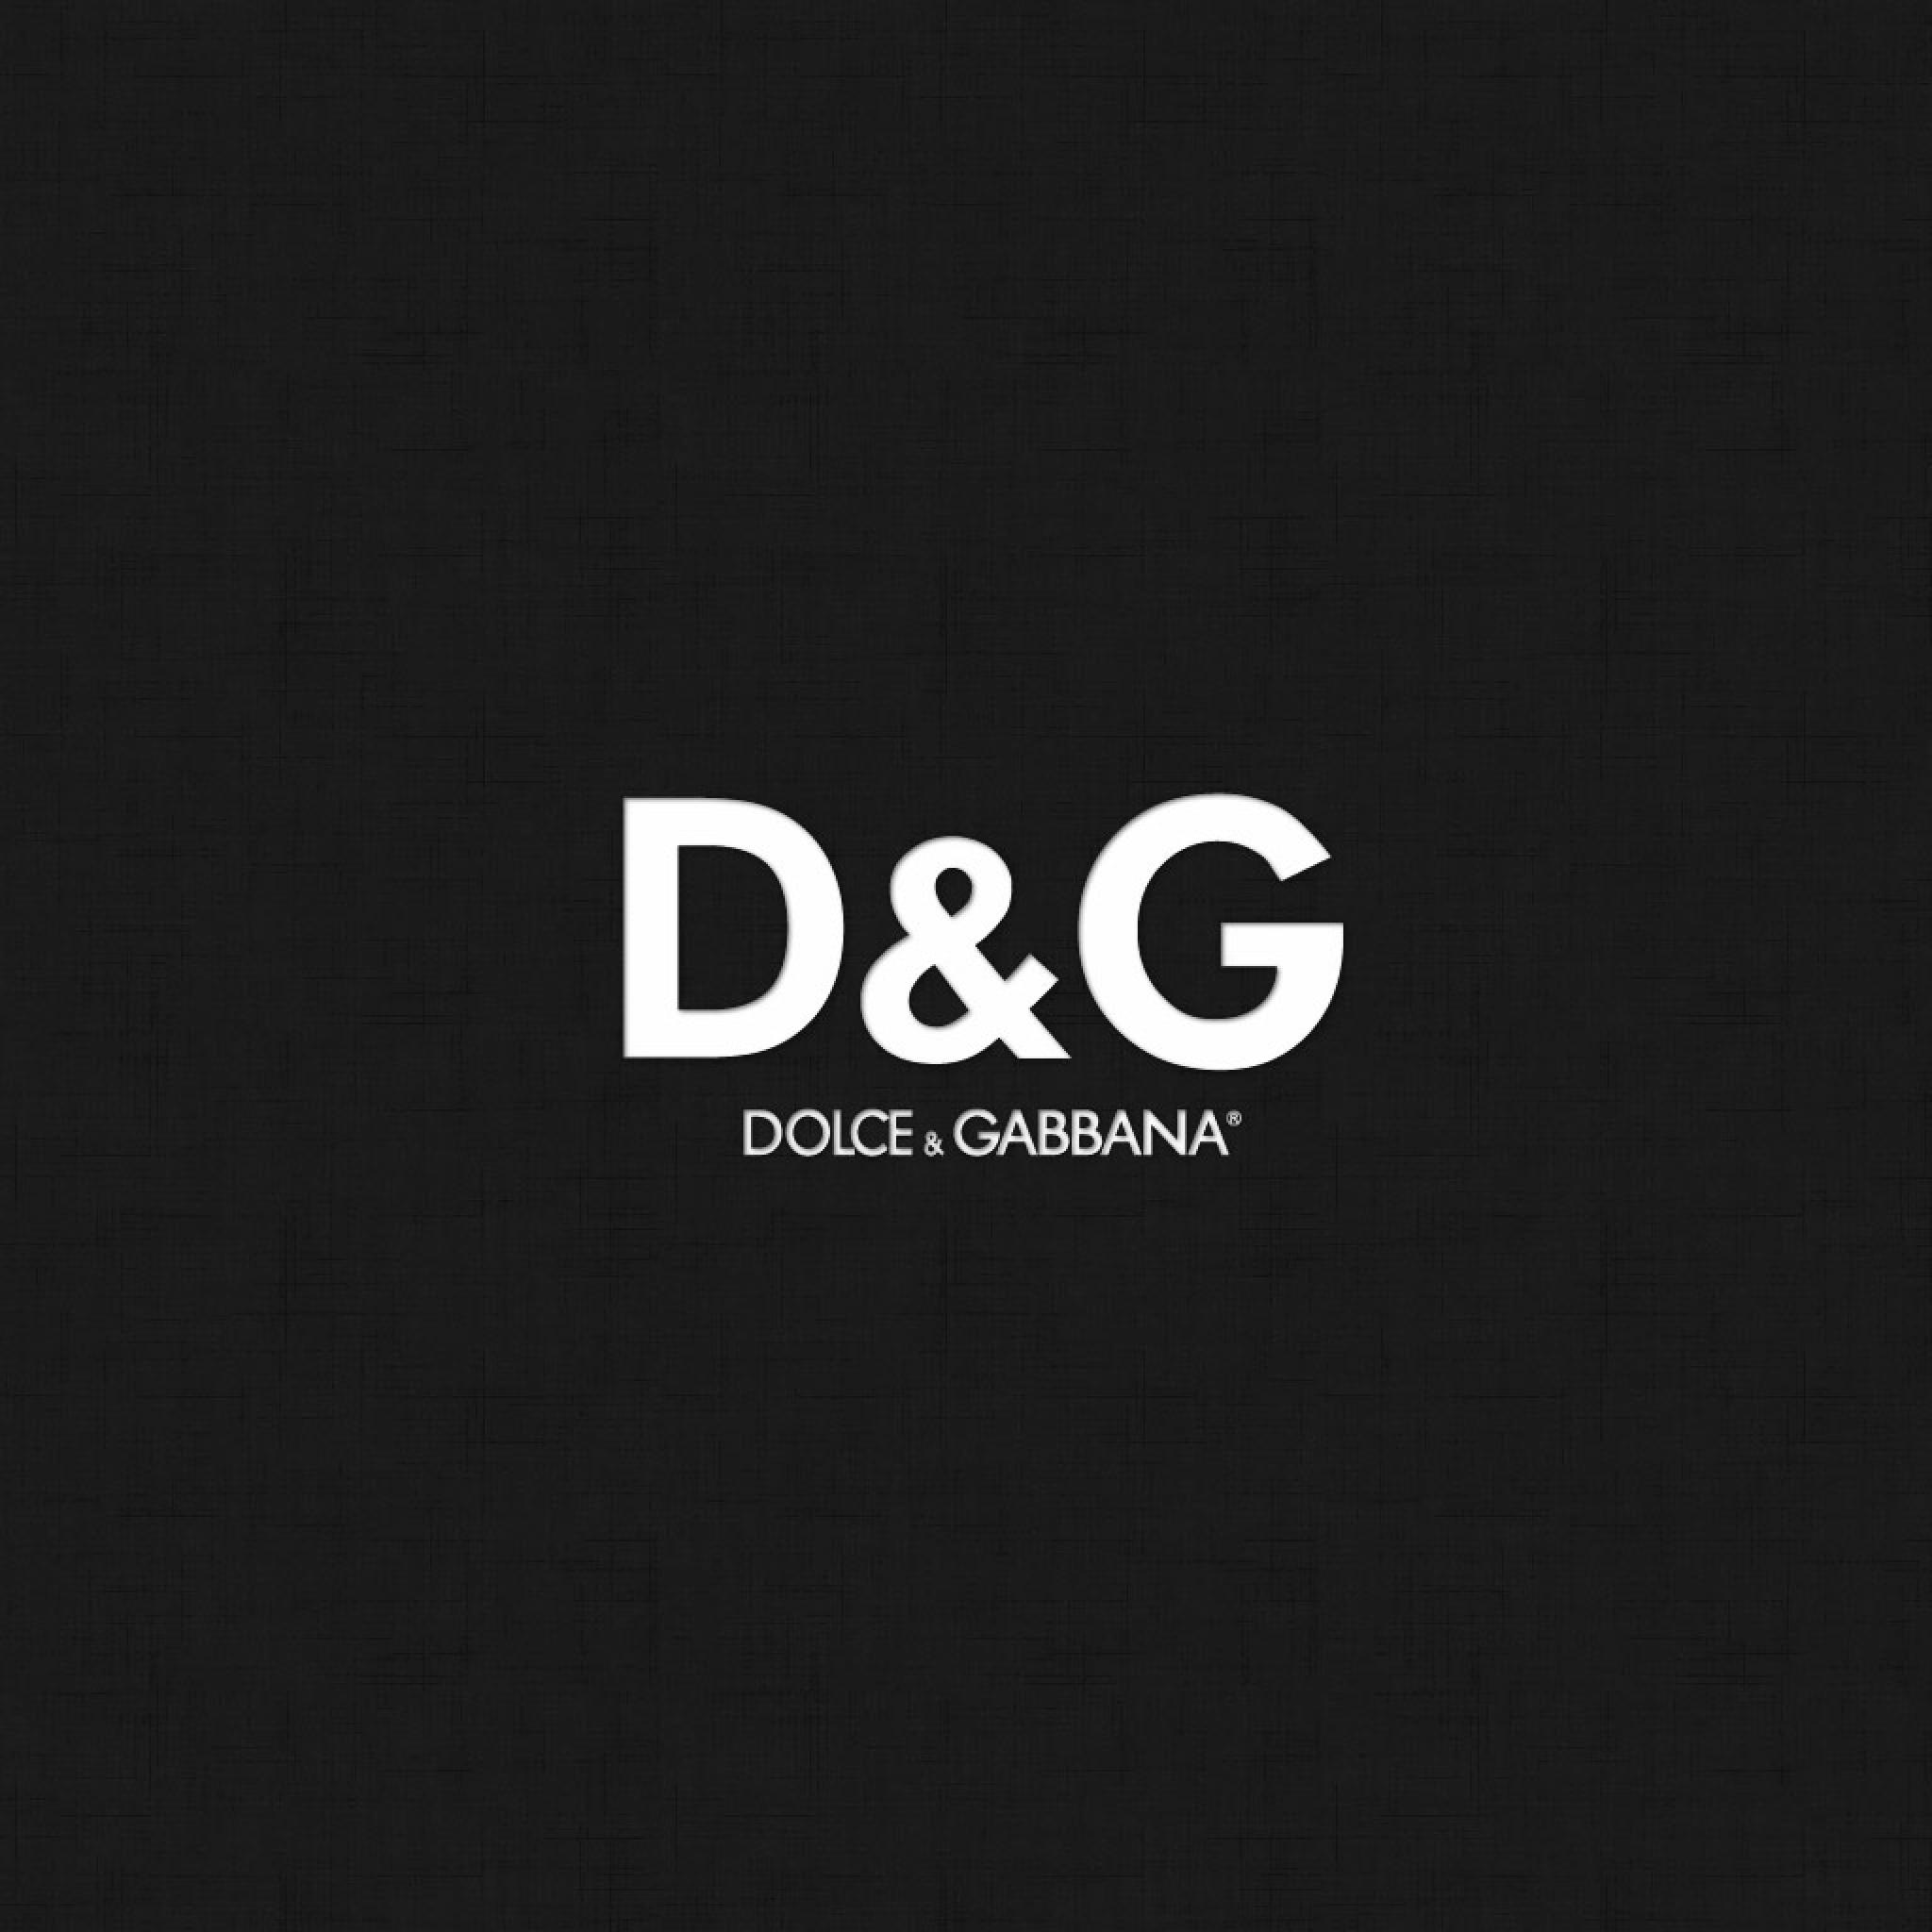 Cute Food Wallpaper With White Background Miscellaneous Dolce And Gabbana Logo Ipad Iphone Hd